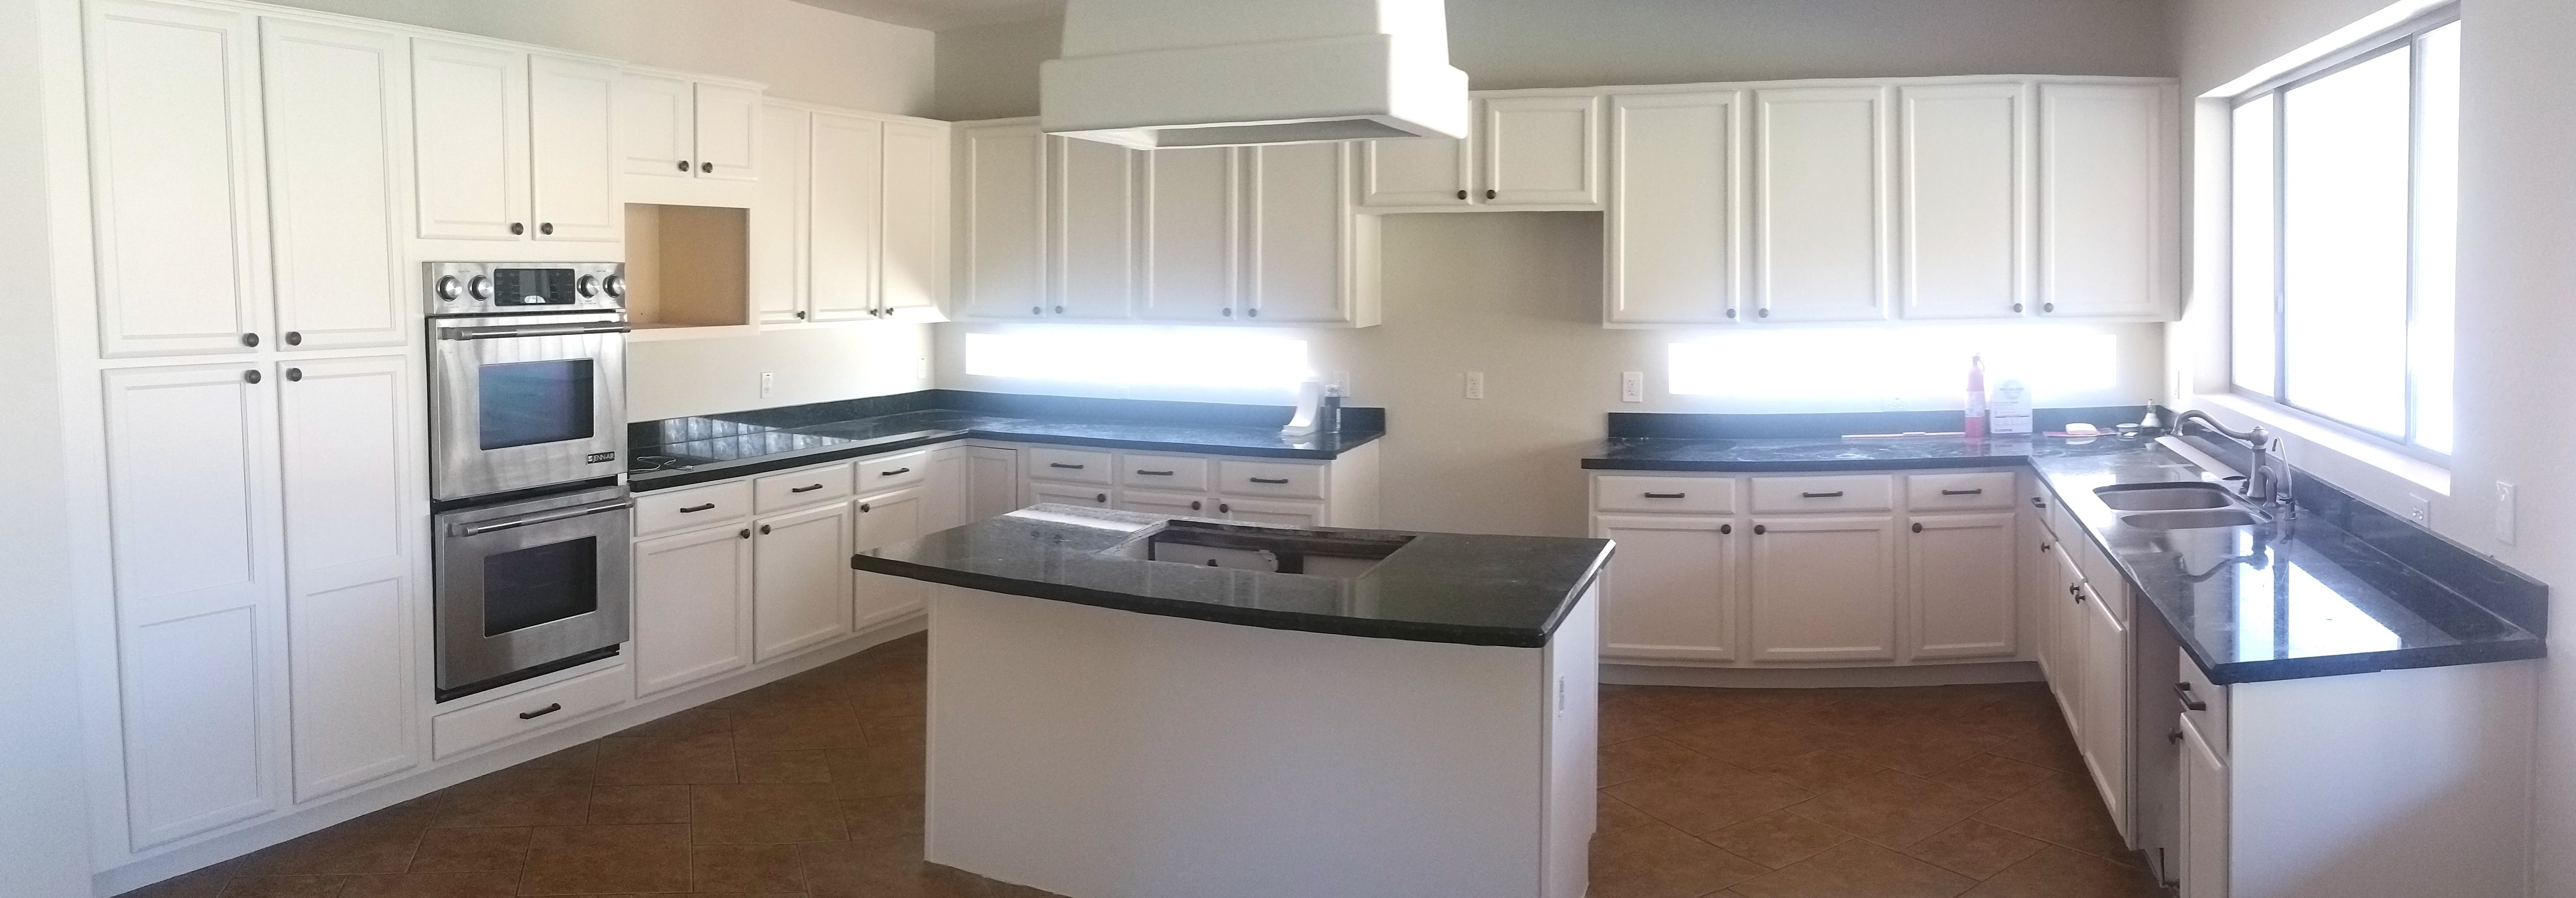 Kitchen Refinishing Cabinet Refinishing Scottsdale Az Refinishing Kitchen Cabinets